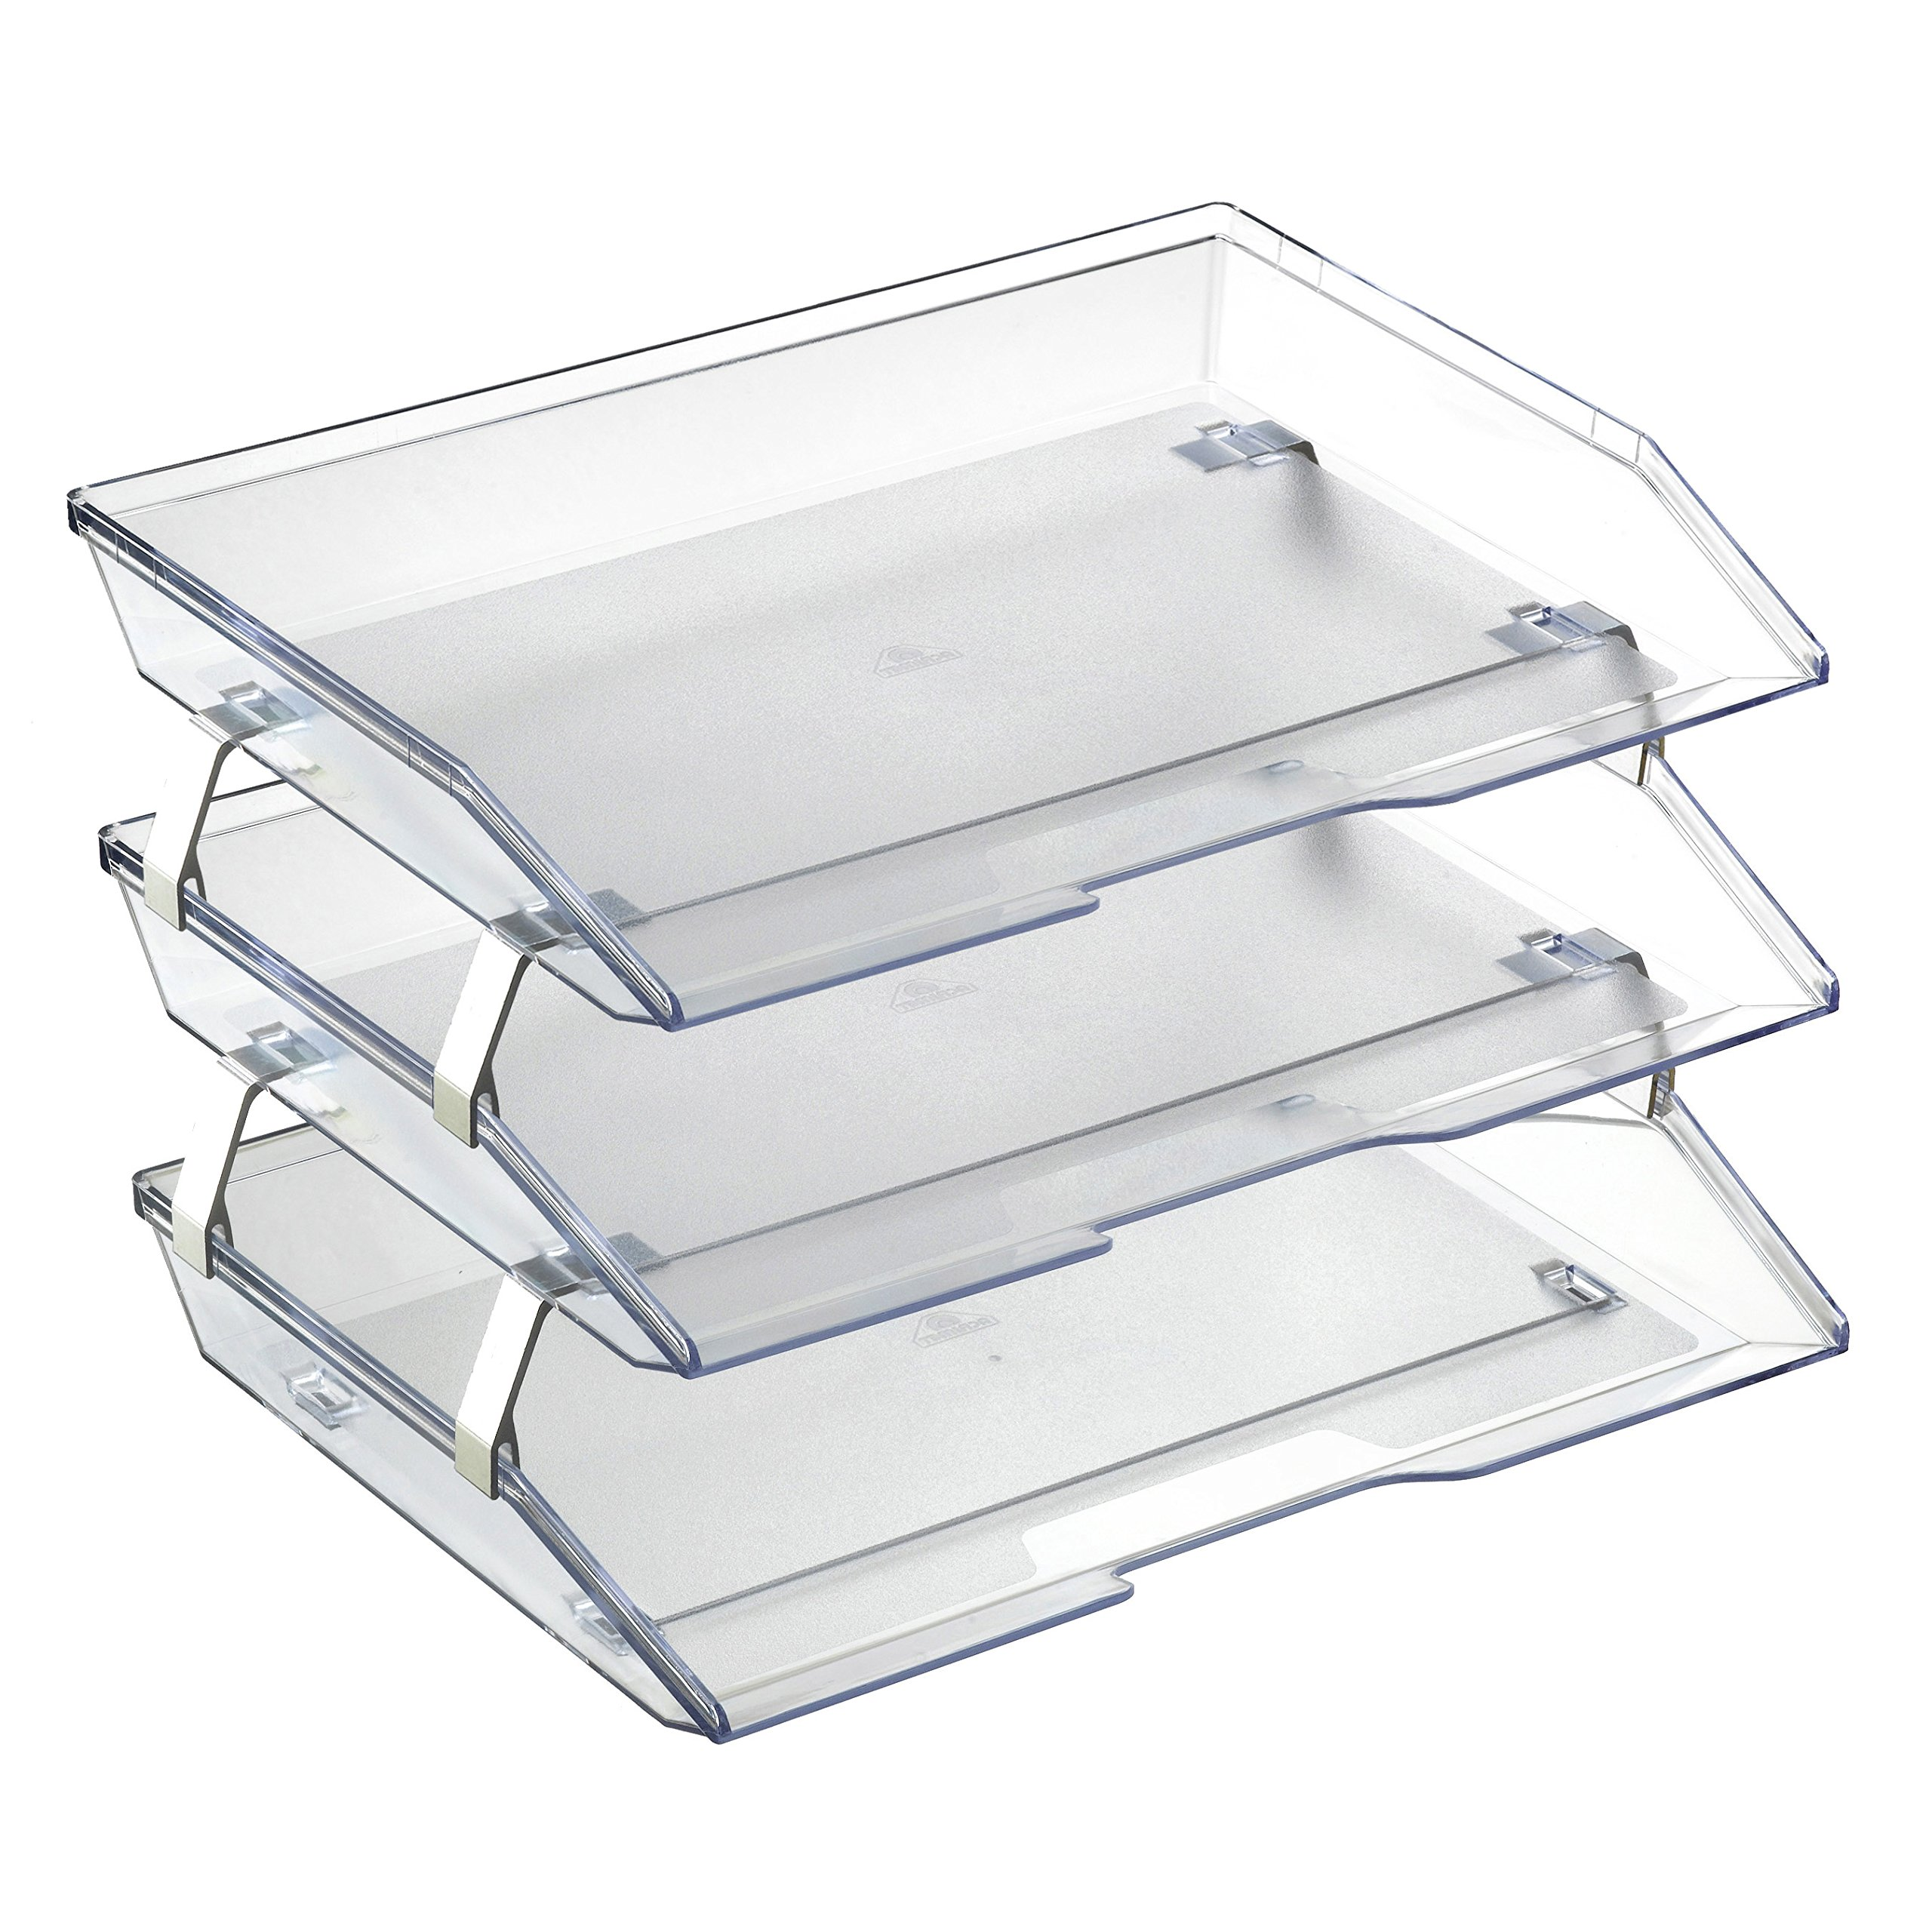 Acrimet Facility 3 Tiers Triple Letter Tray (Crystal Color)